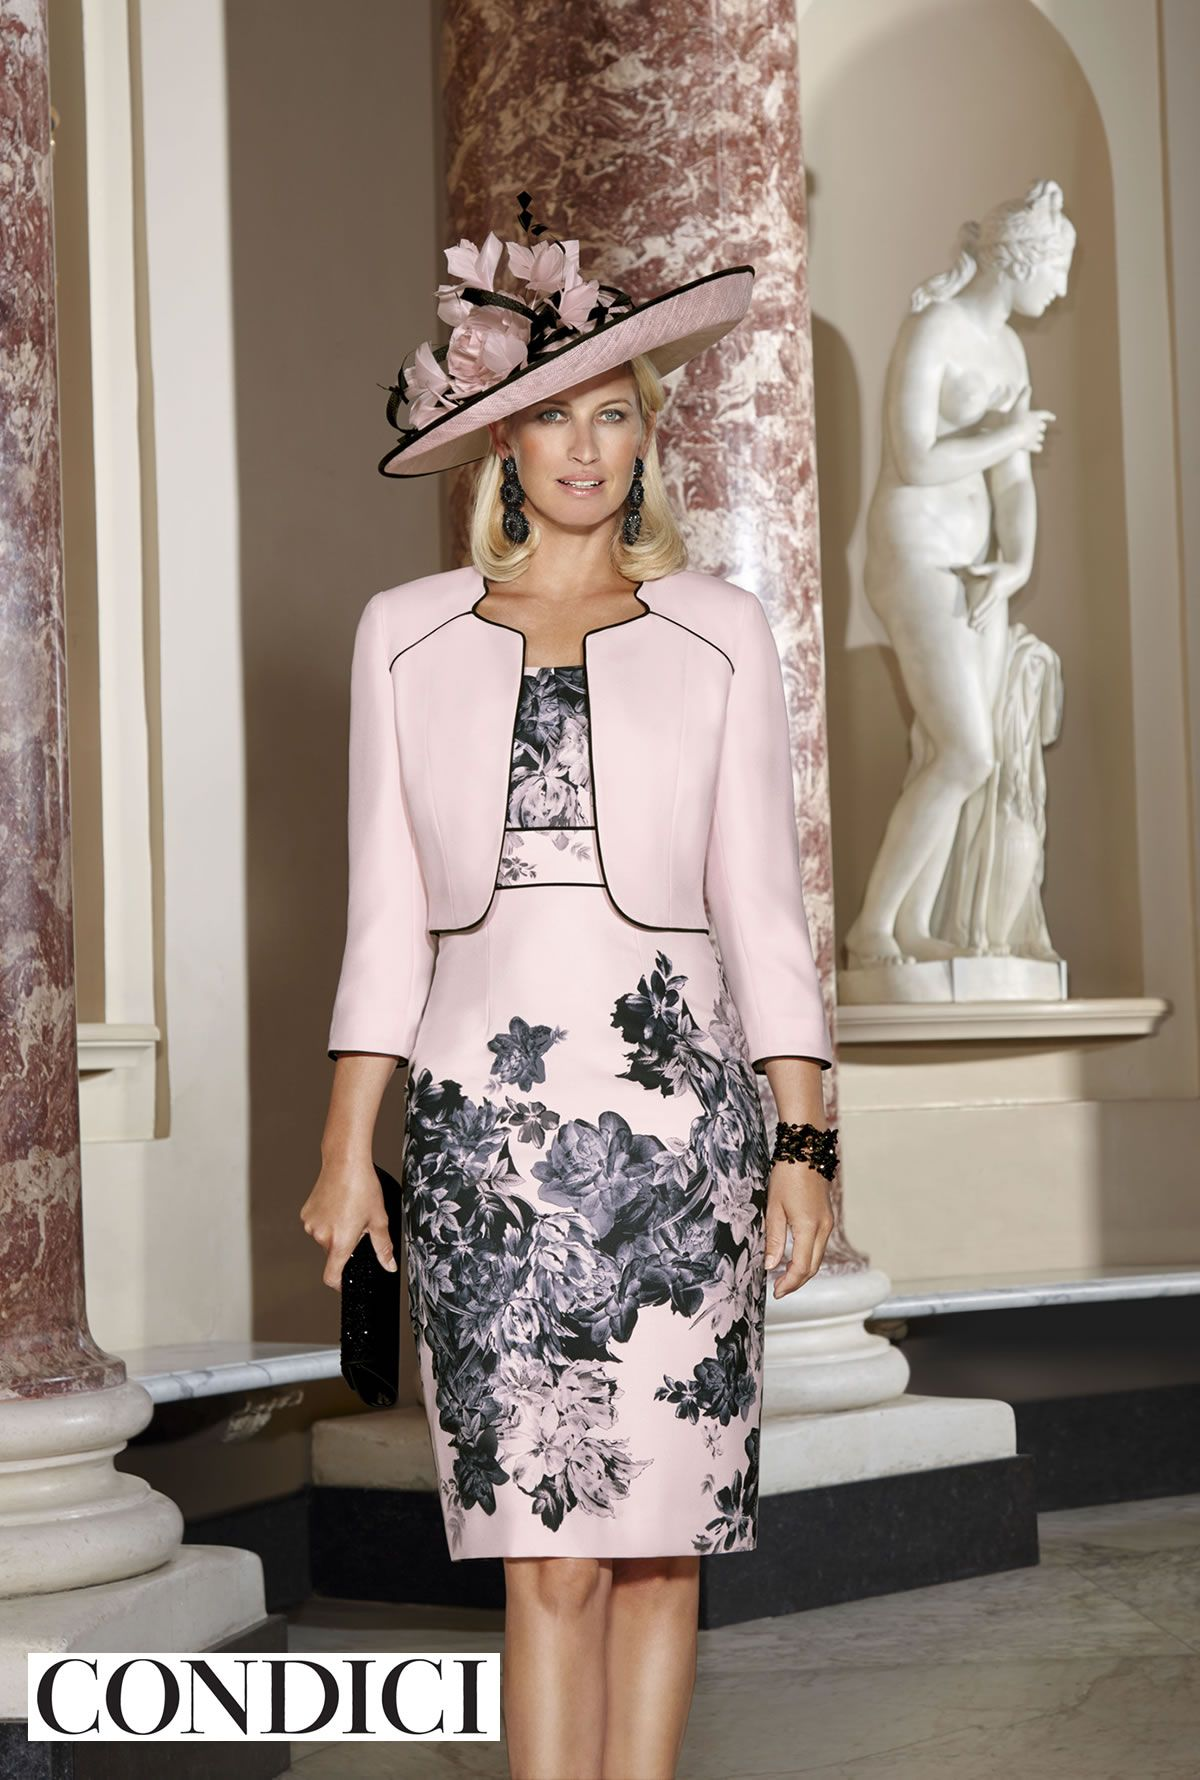 Mother outfits for wedding  Condici Mother Of The Bride   fashion for women  Pinterest